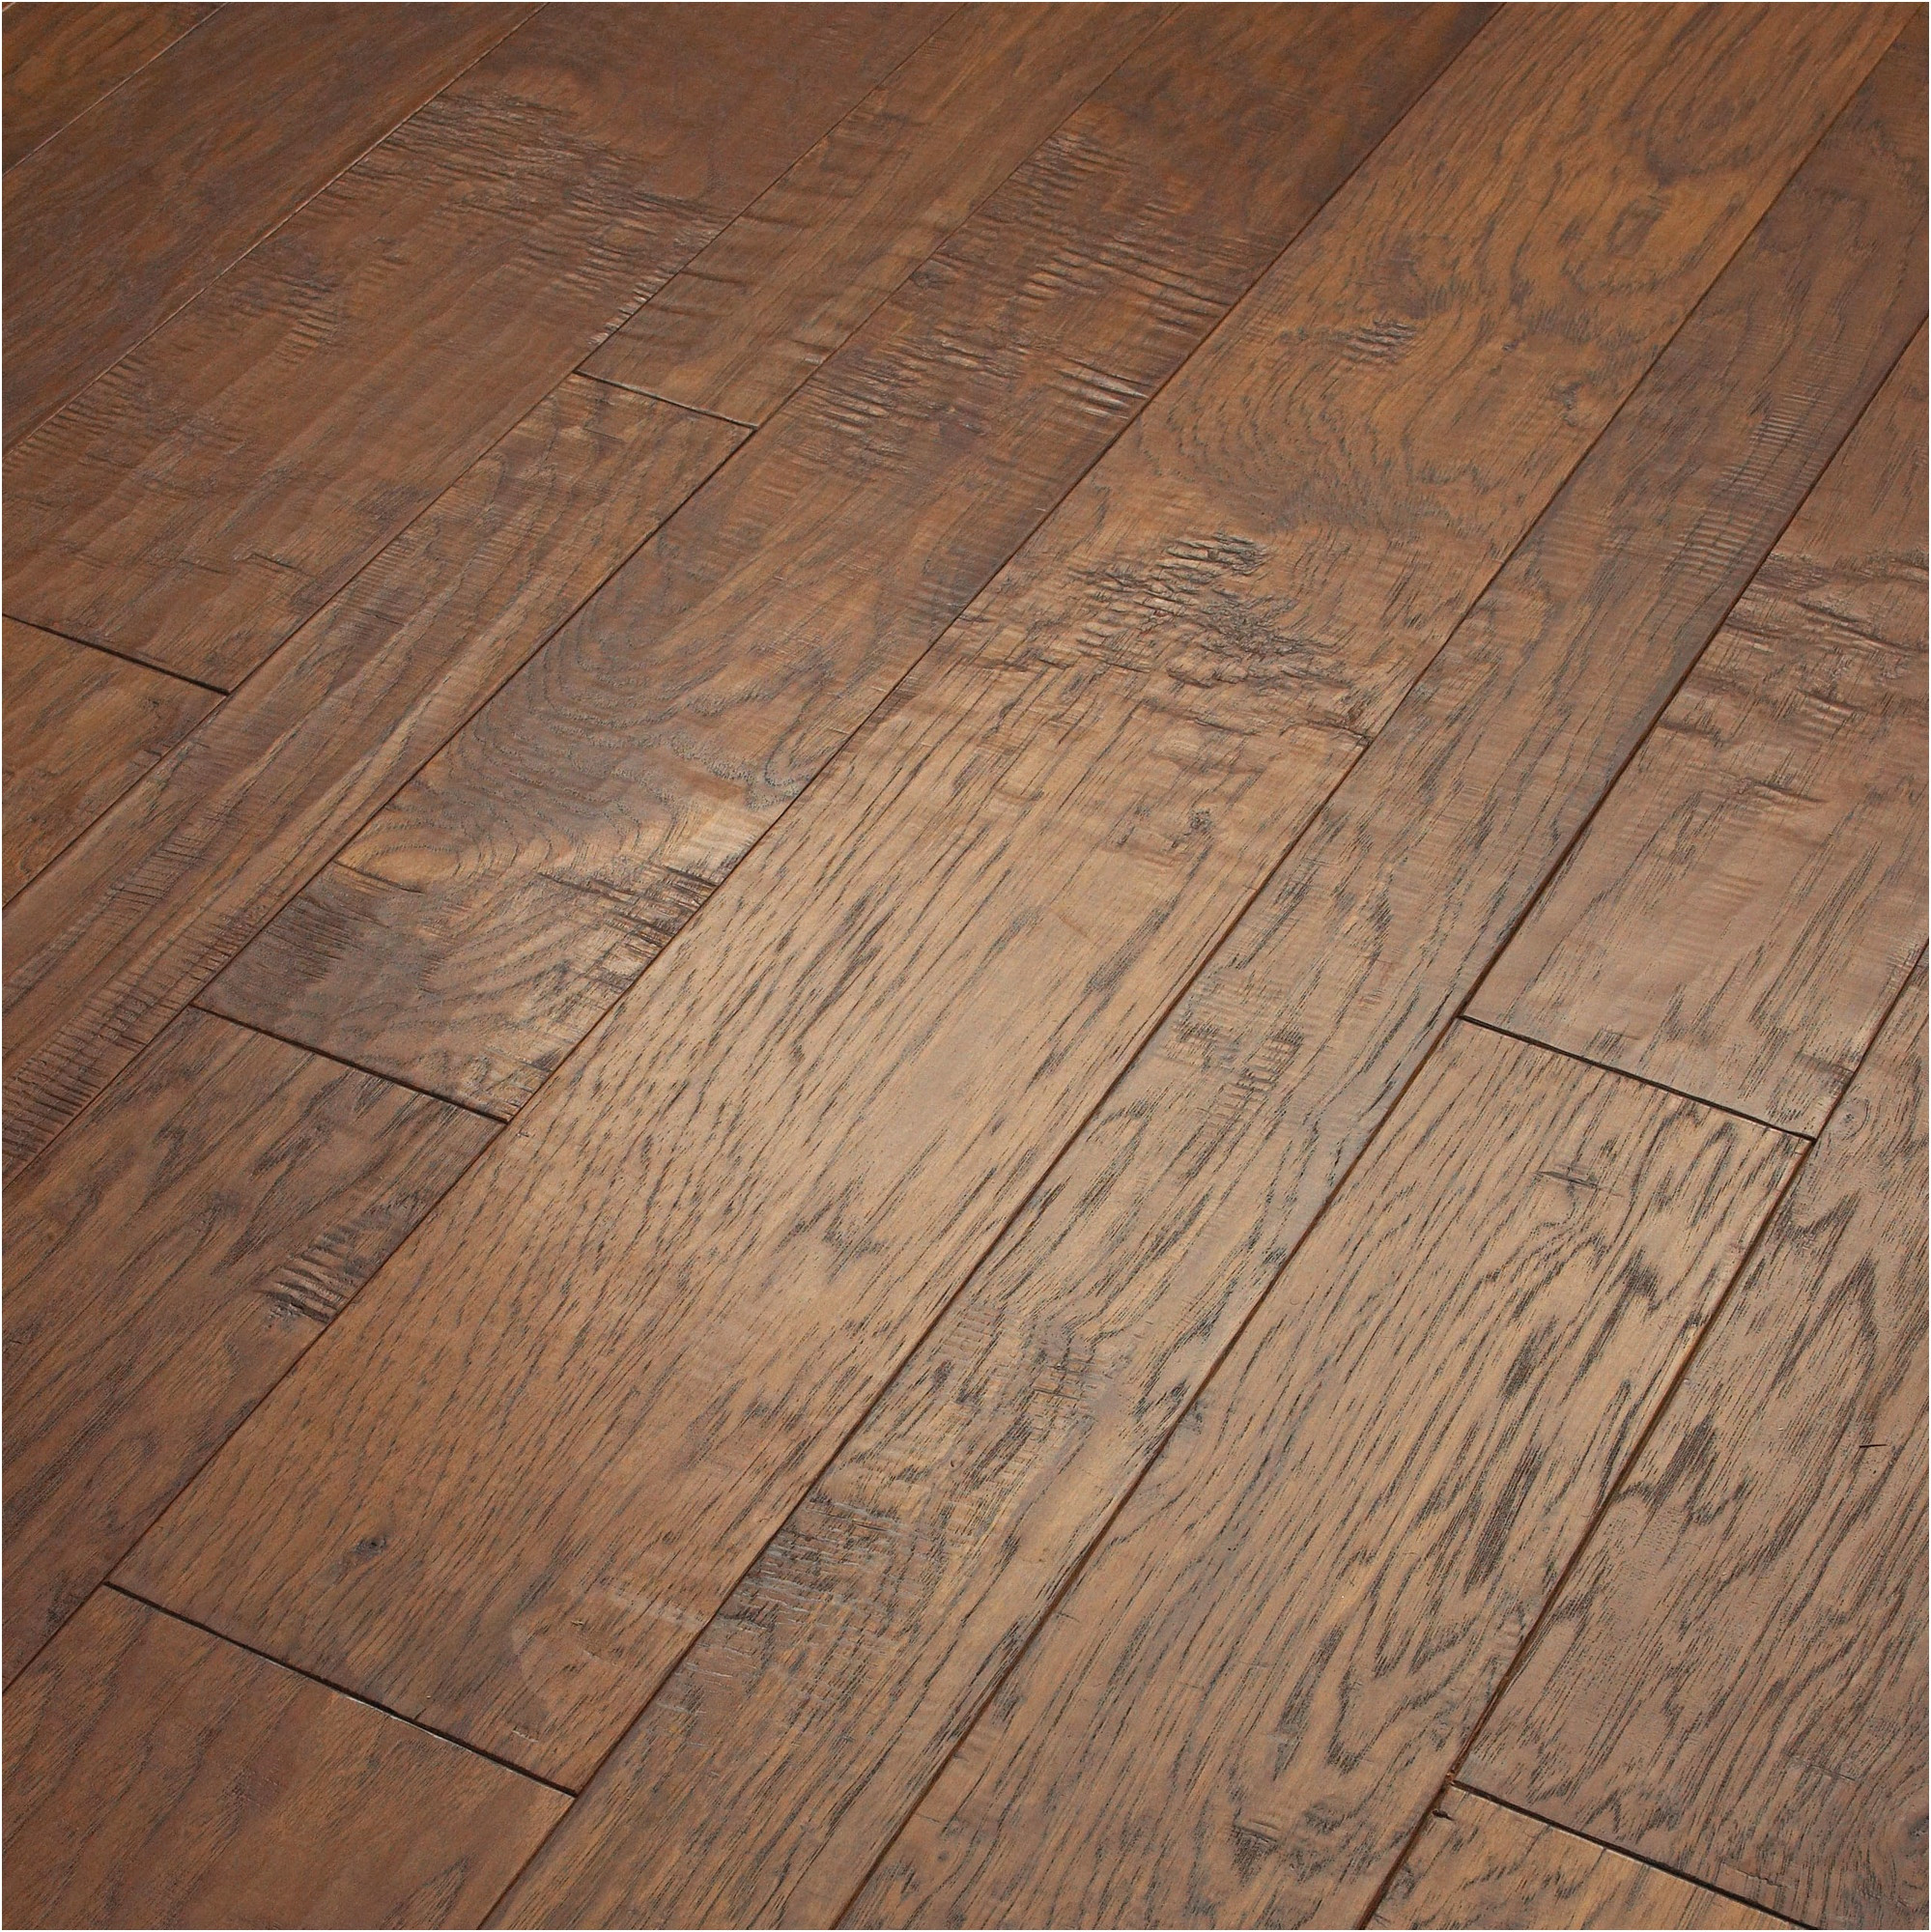 what does hand scraped hardwood flooring mean of best hand scraped hardwood flooring reviews collection engineered regarding best hand scraped hardwood flooring reviews collection hudson bay engineered handscraped hickory flooring in copperidge of